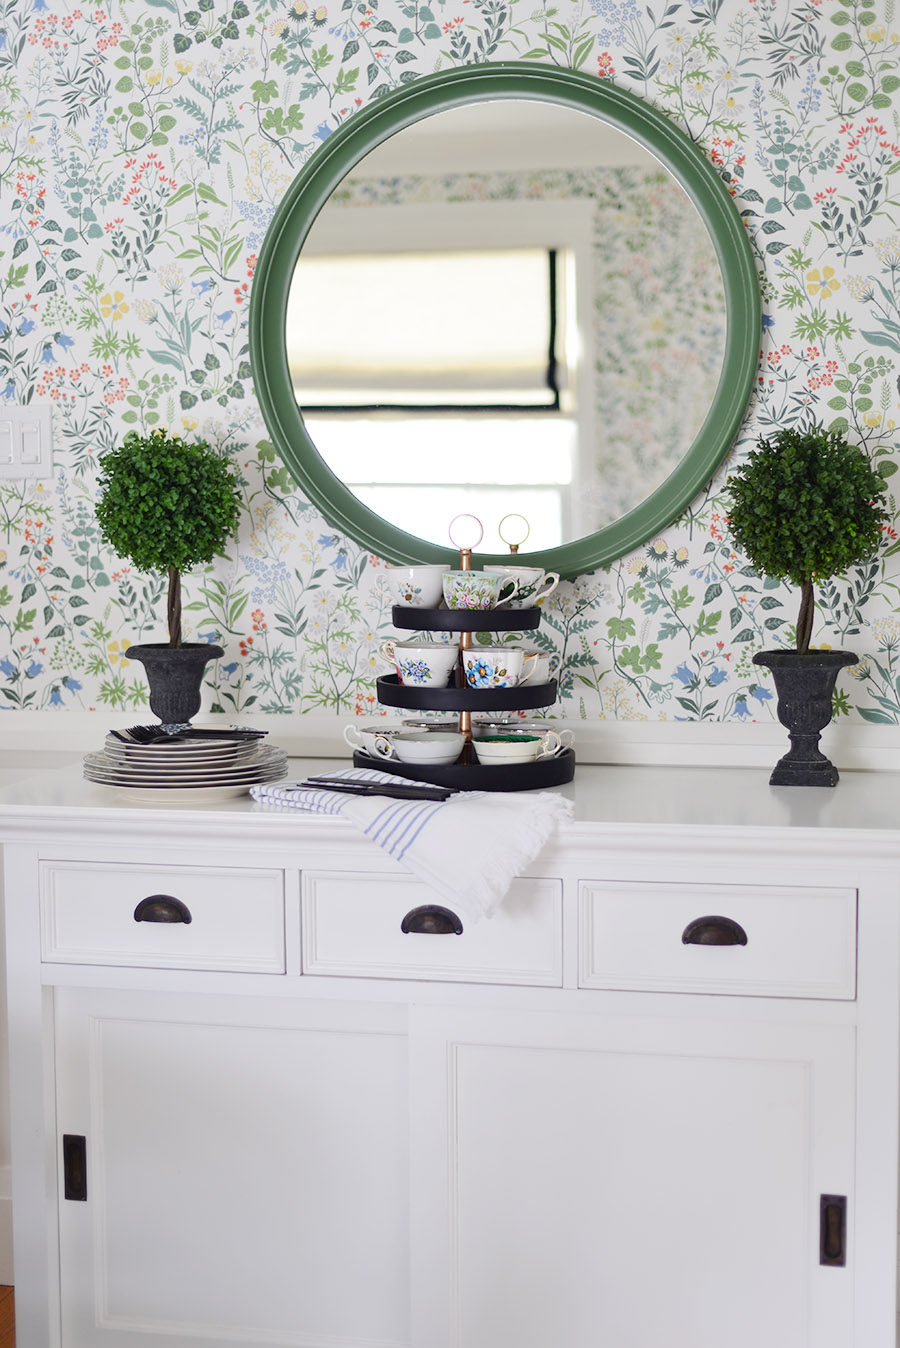 spring decor in dining room, green round mirror, modern floral wallpaper, faux topiary, white buffet cabinet novasolo